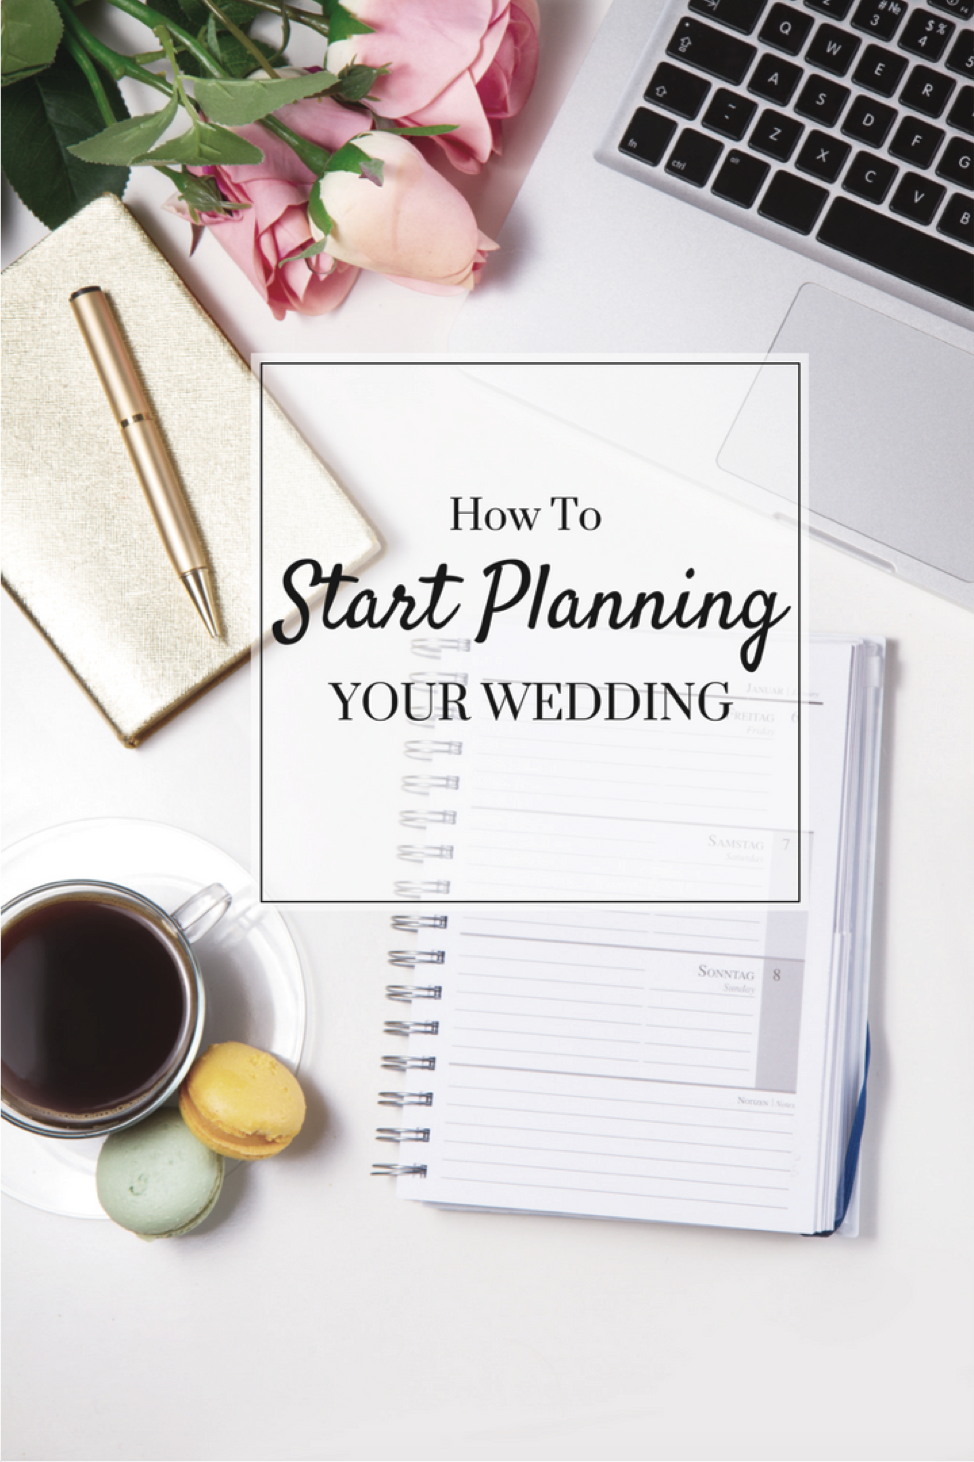 How To Start Planning A Wedding.How To Start Planning Your Wedding Beauty Marked Events